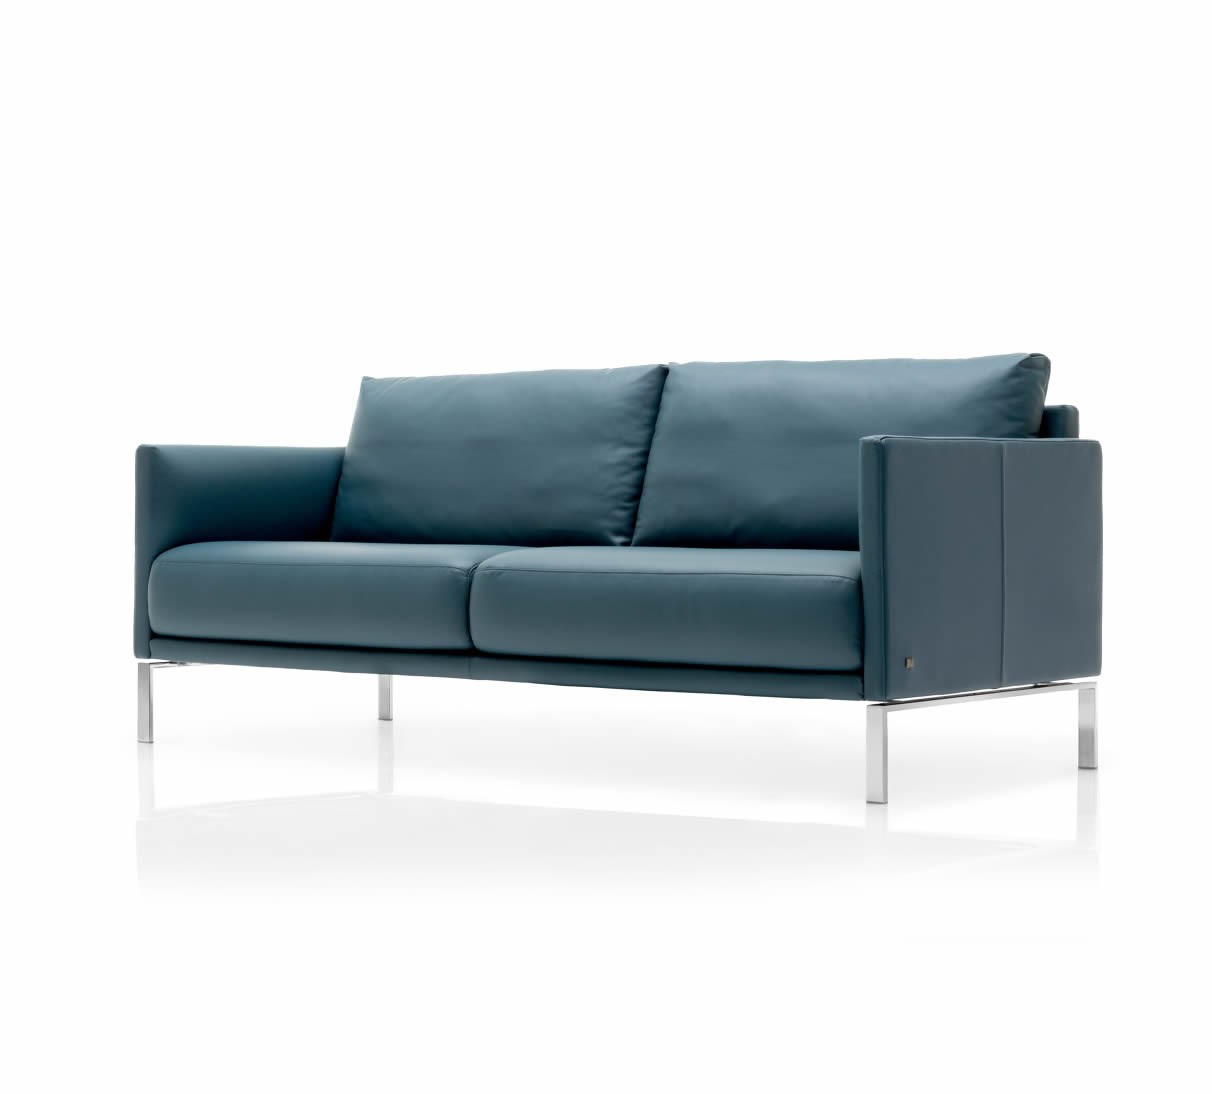 Rolf benz recamiere for Benz couch